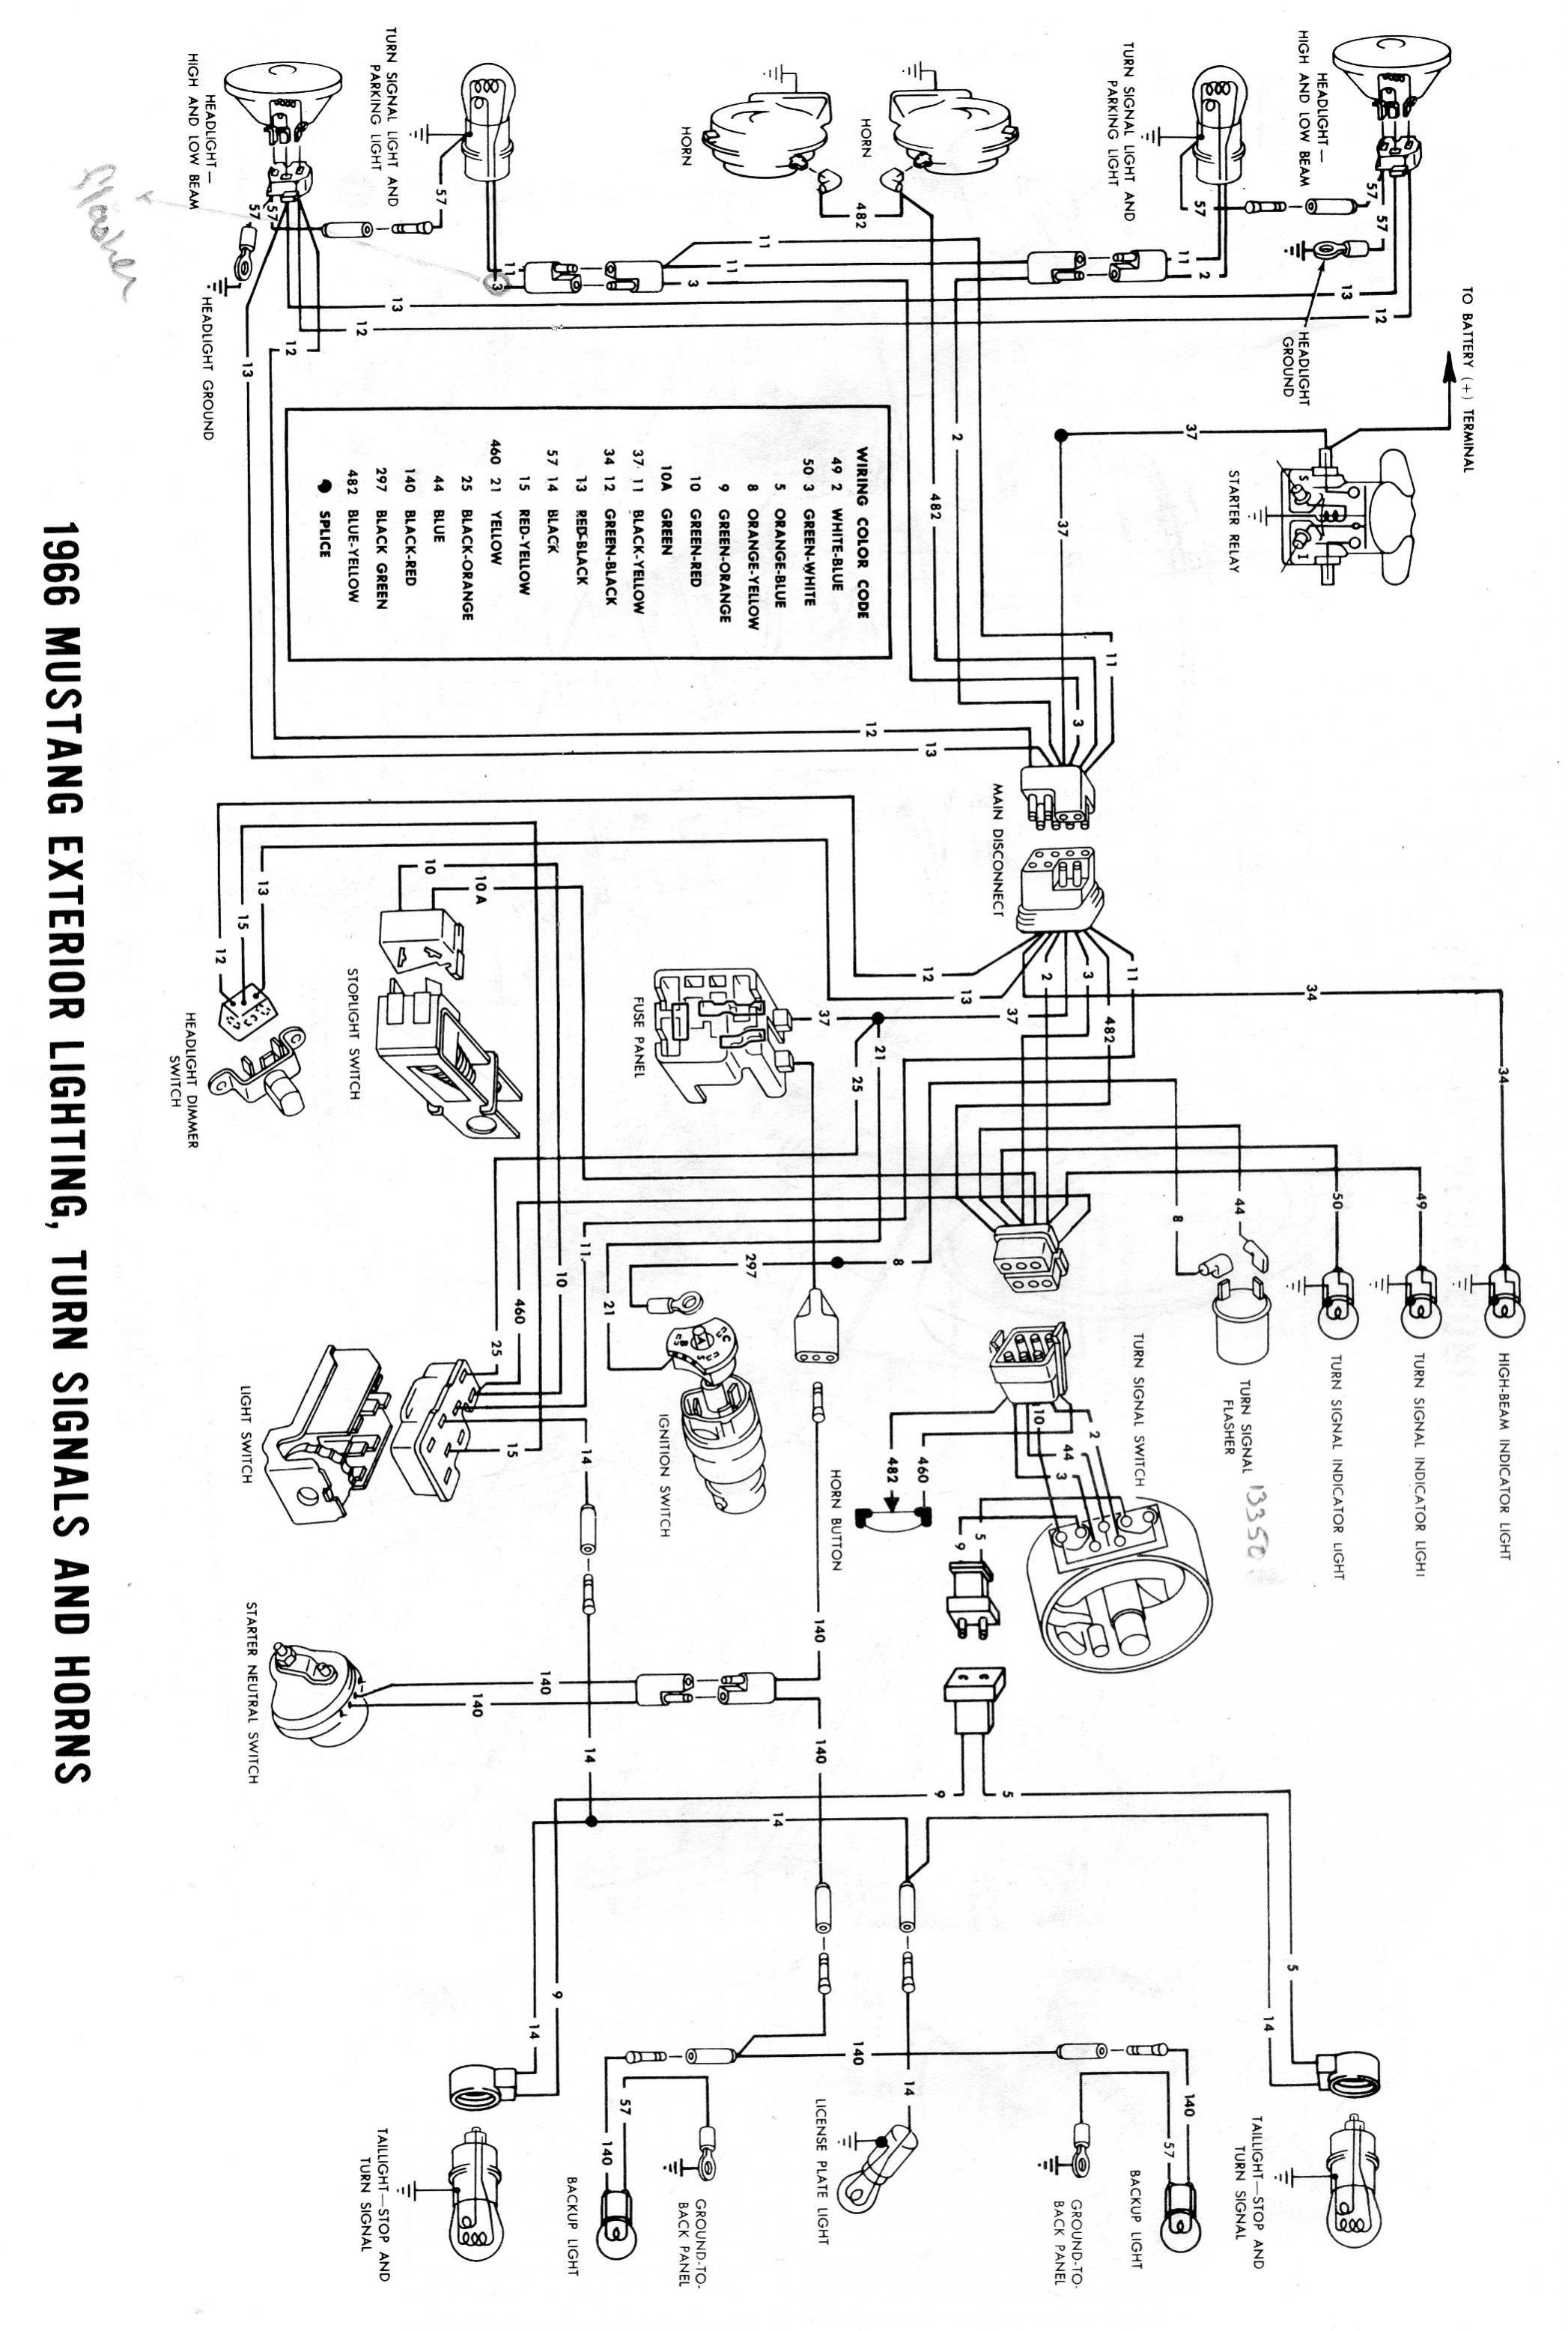 1966 Mustang Interior Wiring Diagram Library Ignition Warning Light 1973 Ford Product Diagrams U2022 Truck